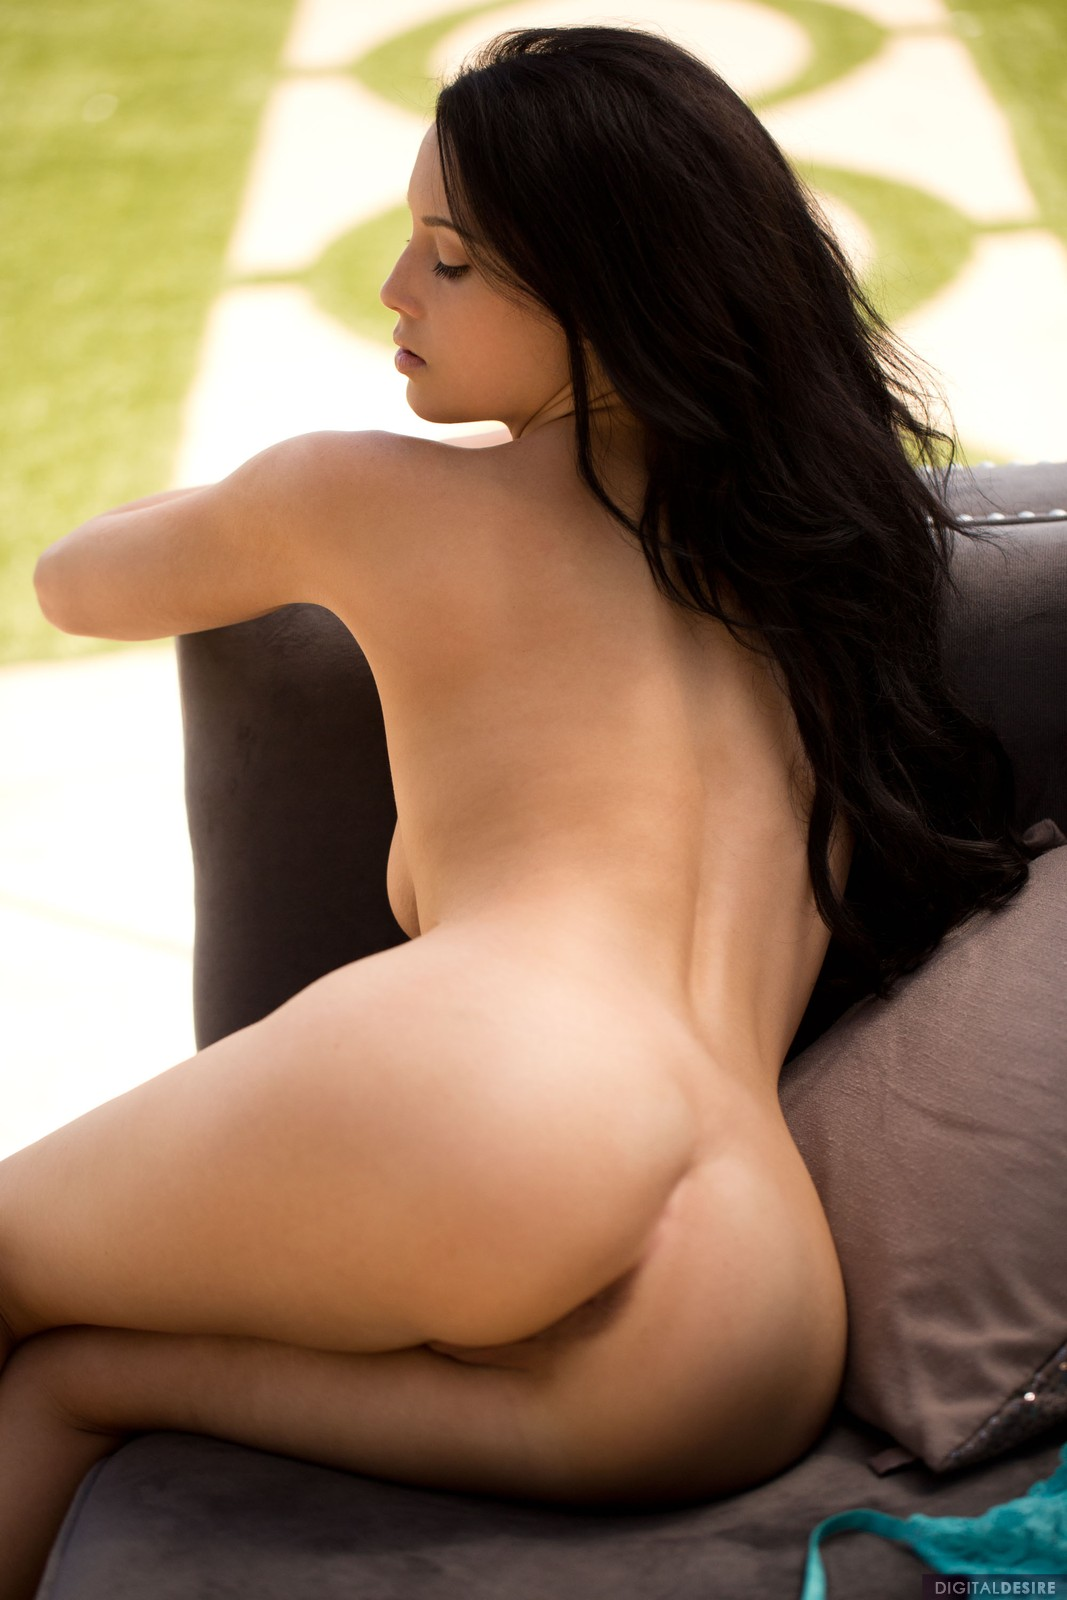 Noelle Easton Nude Photos...